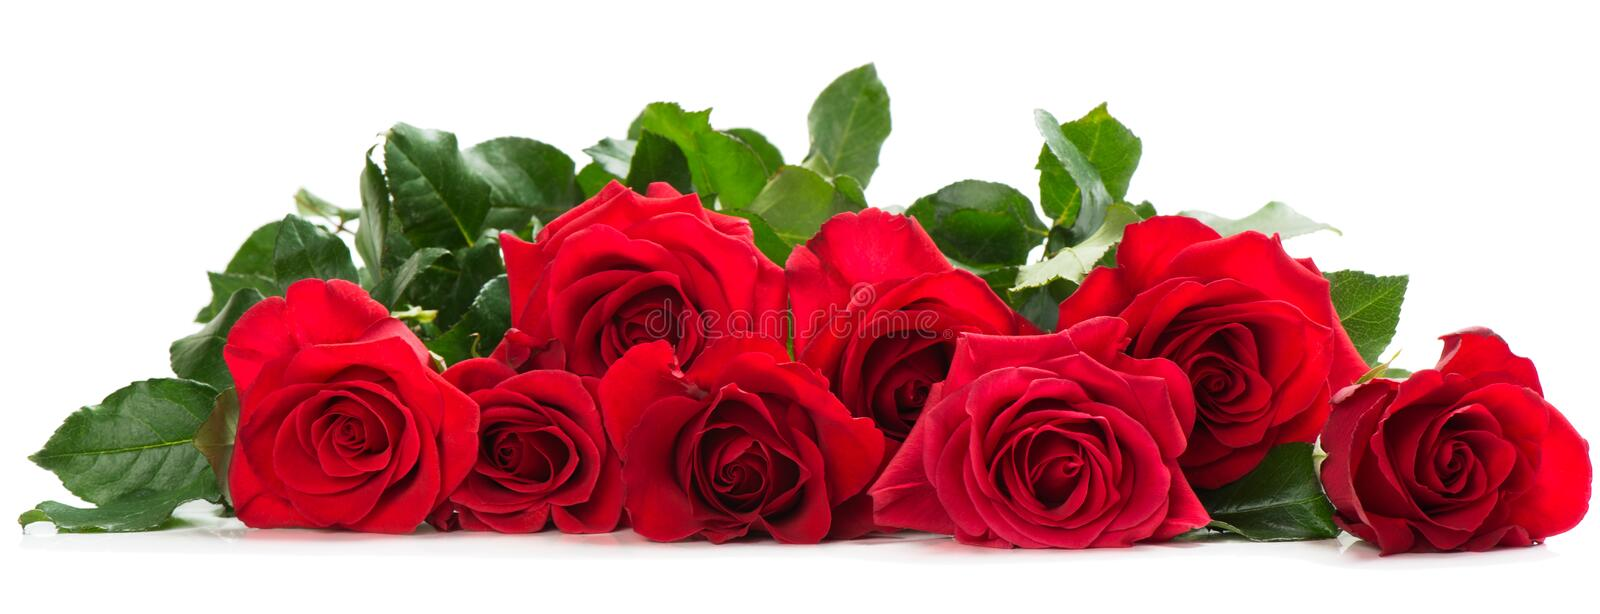 Few red roses. Border from beautiful red roses on white background royalty free stock photo